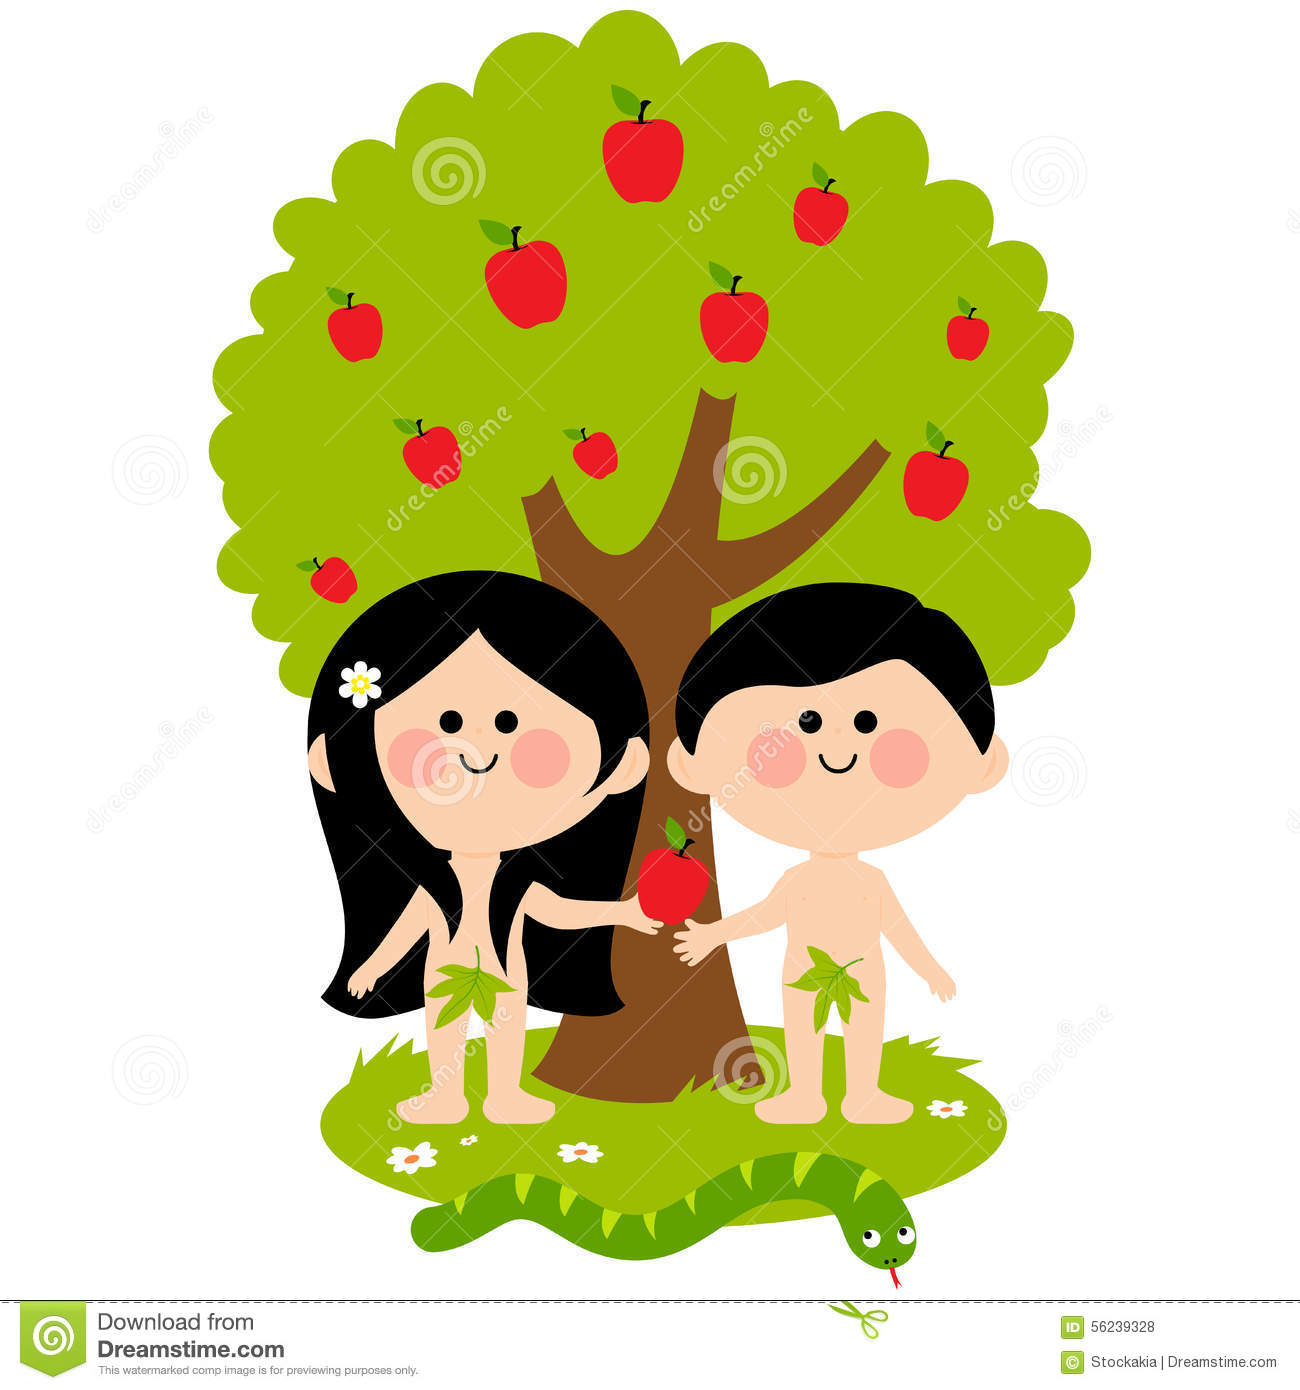 Adam und eva clipart svg stock Temptation Snake Apple Stock Photos, Images, & Pictures - 185 Images svg stock